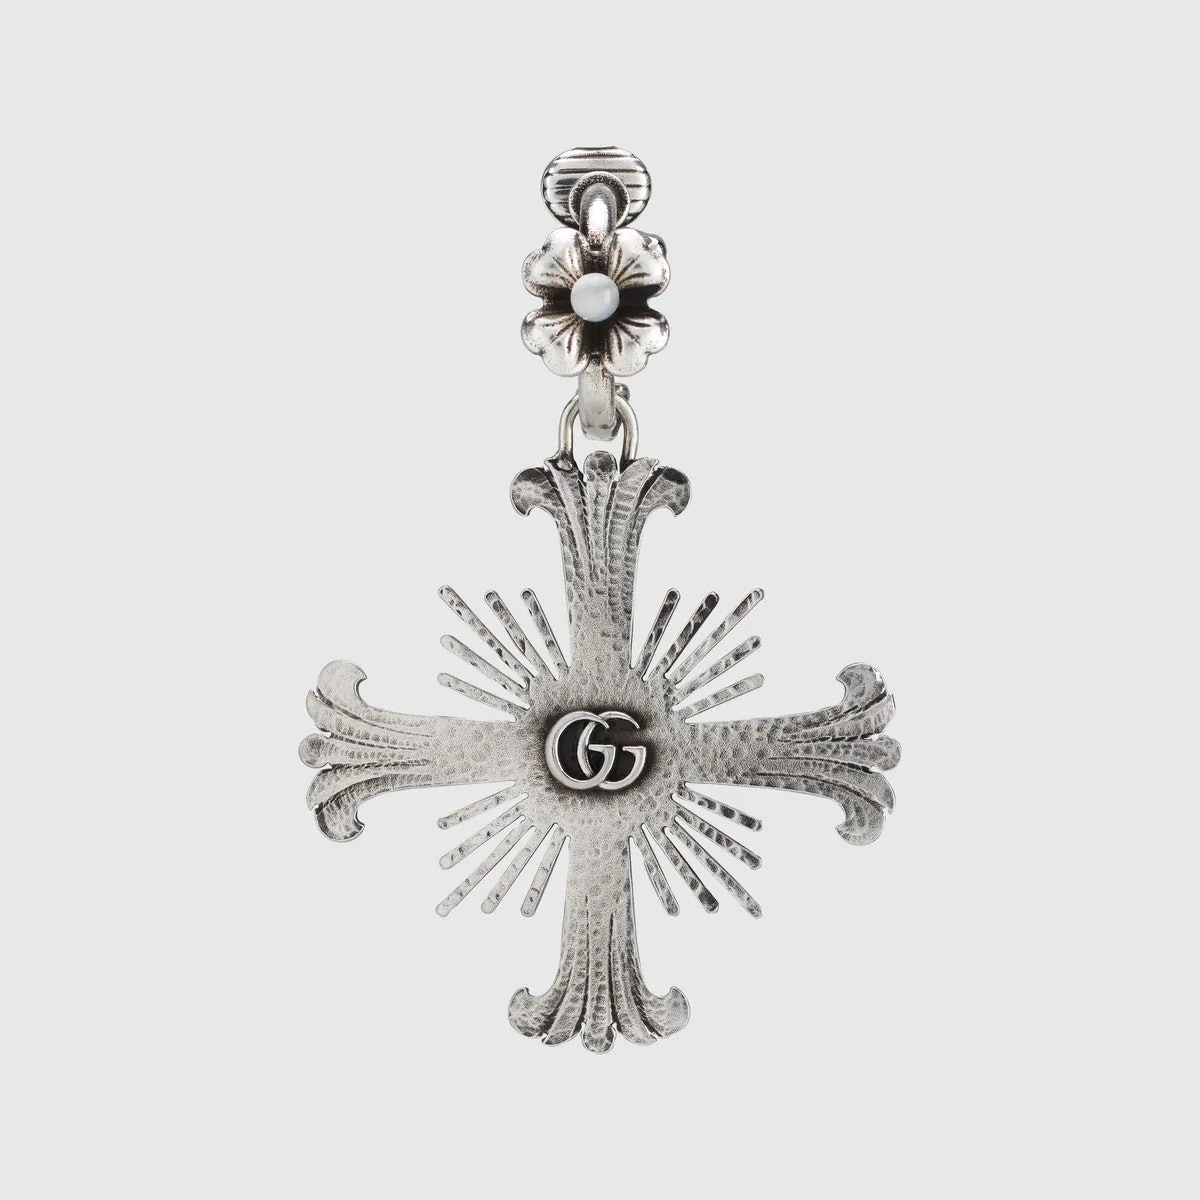 Single unisex earring with flower and cross from Gucci.